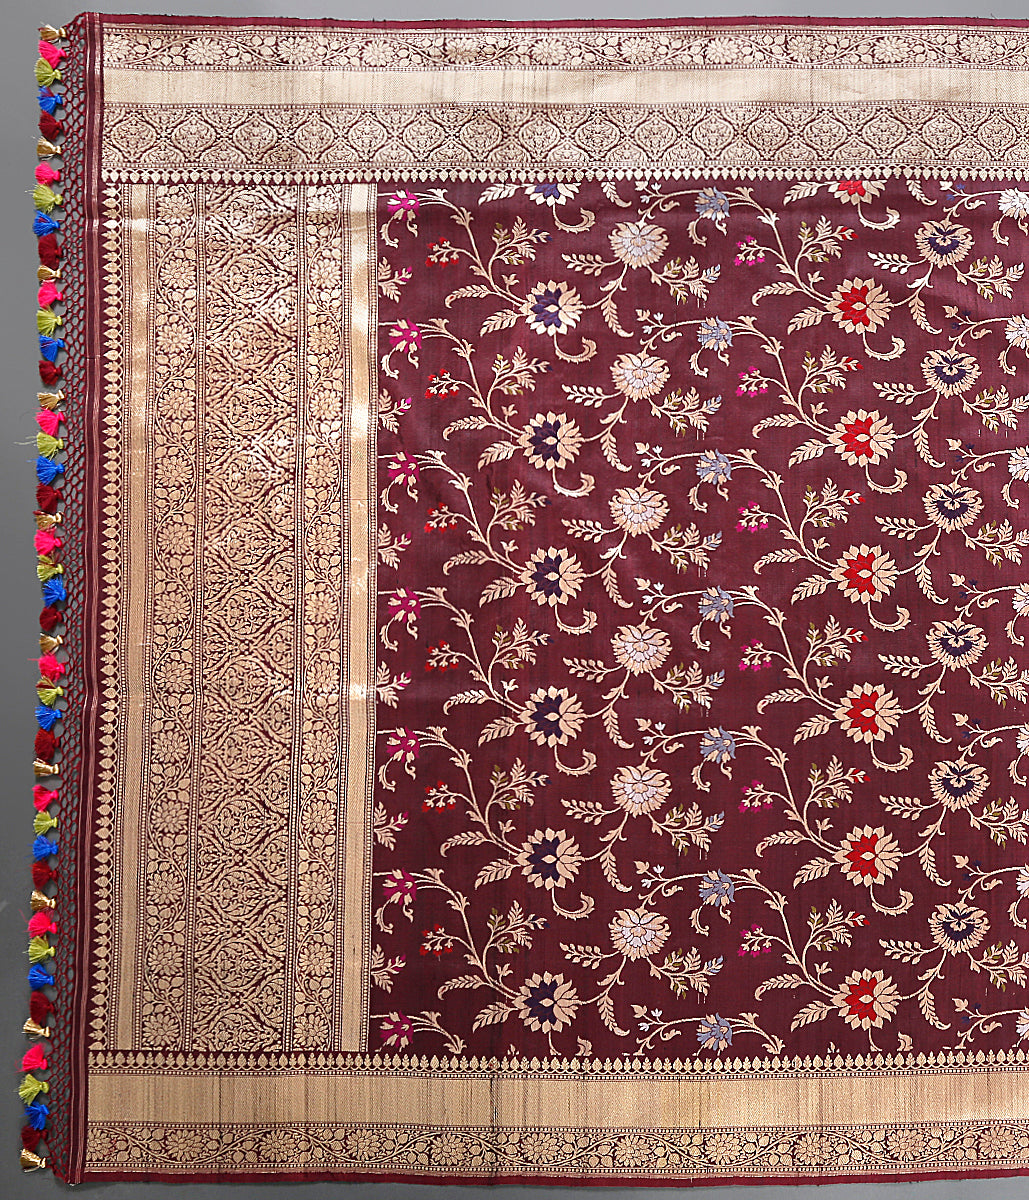 Brown Kadhwa Jangla dupatta woven in fine tusser silk